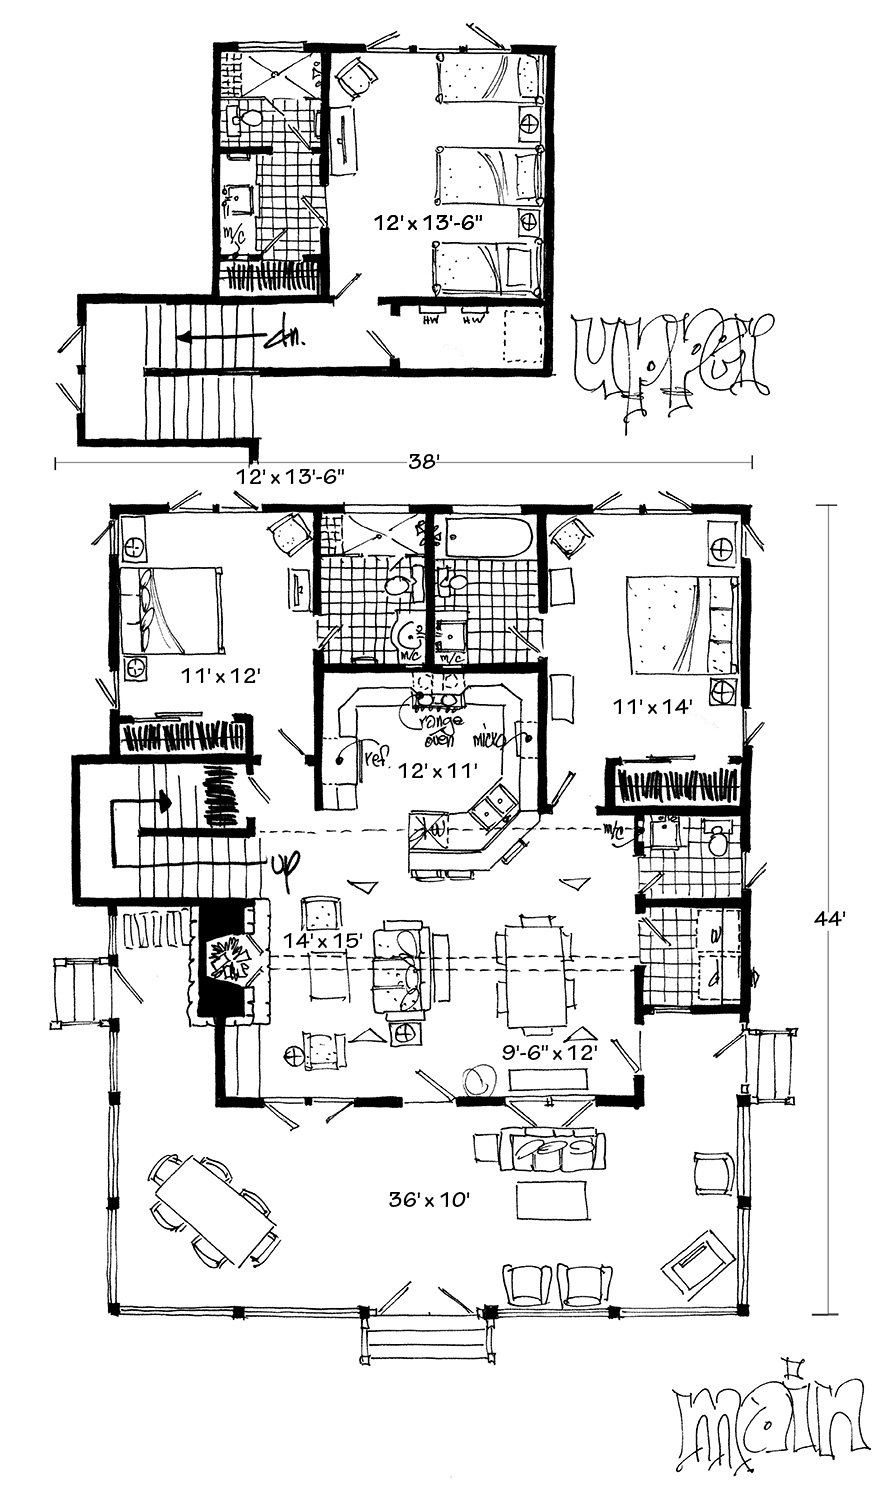 diagram of bunkhouse plantribe the marketplace to buy and sell house plans  marketplace to buy and sell house plans